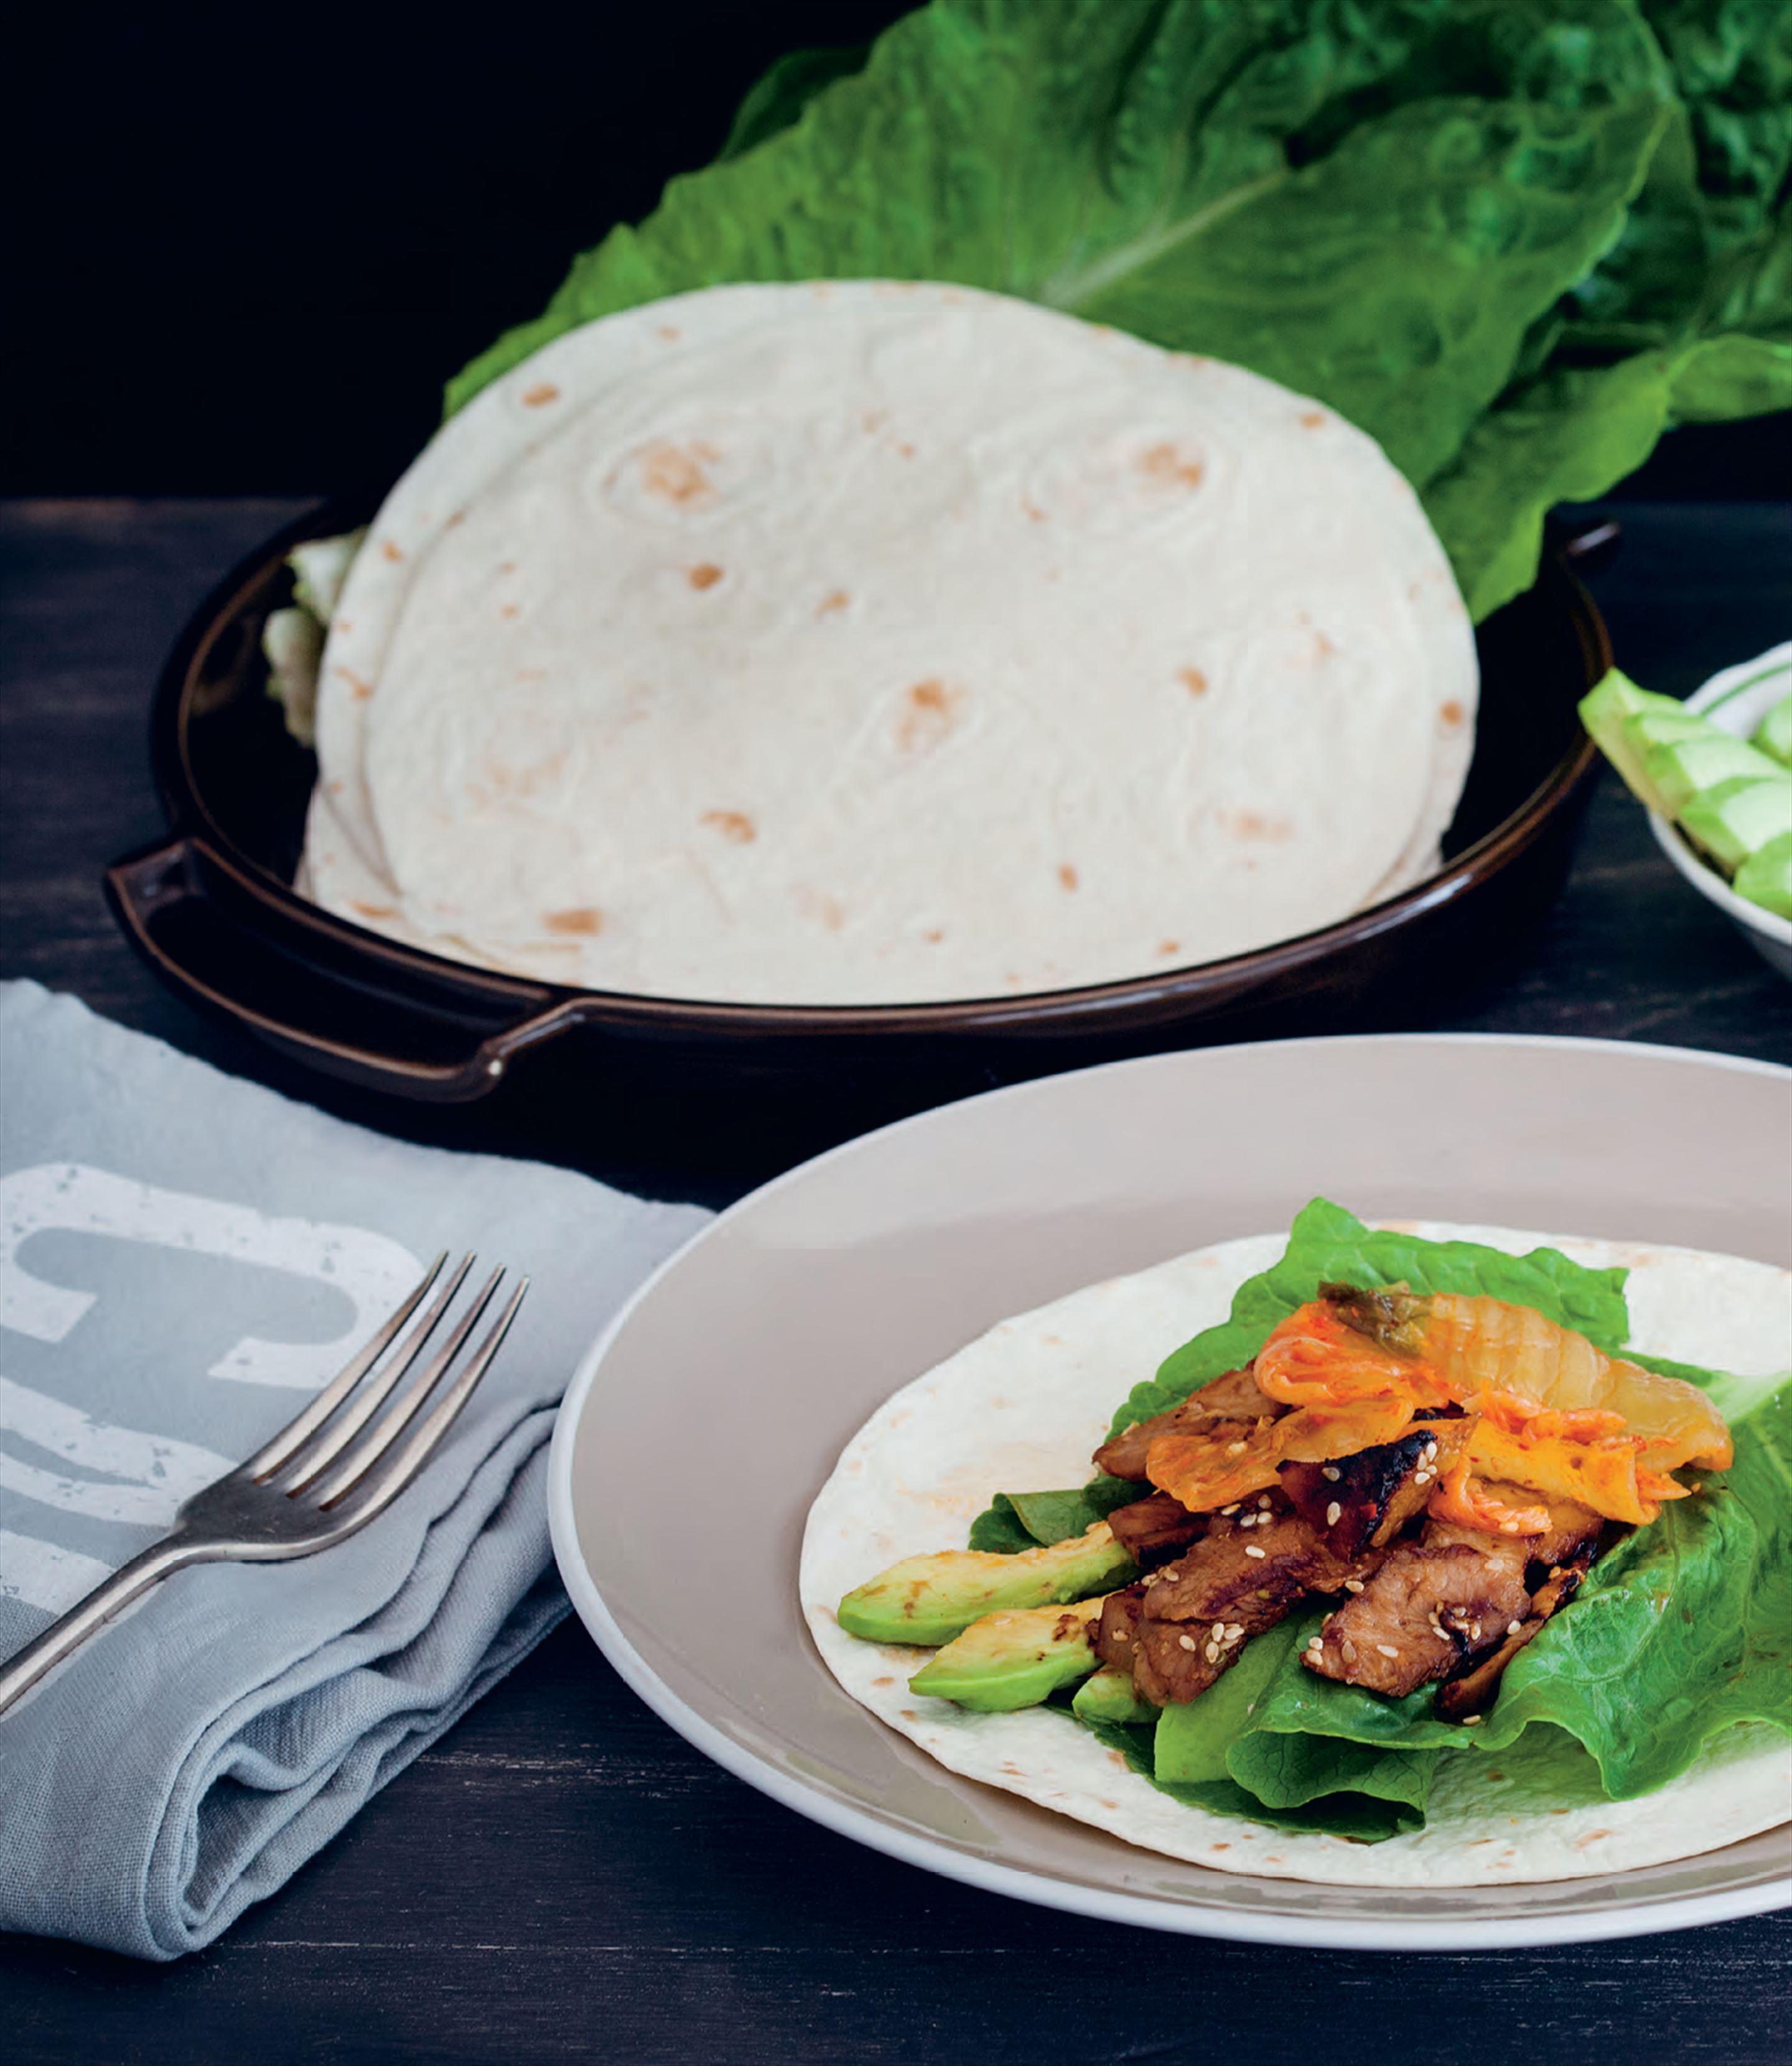 Korean pork wraps